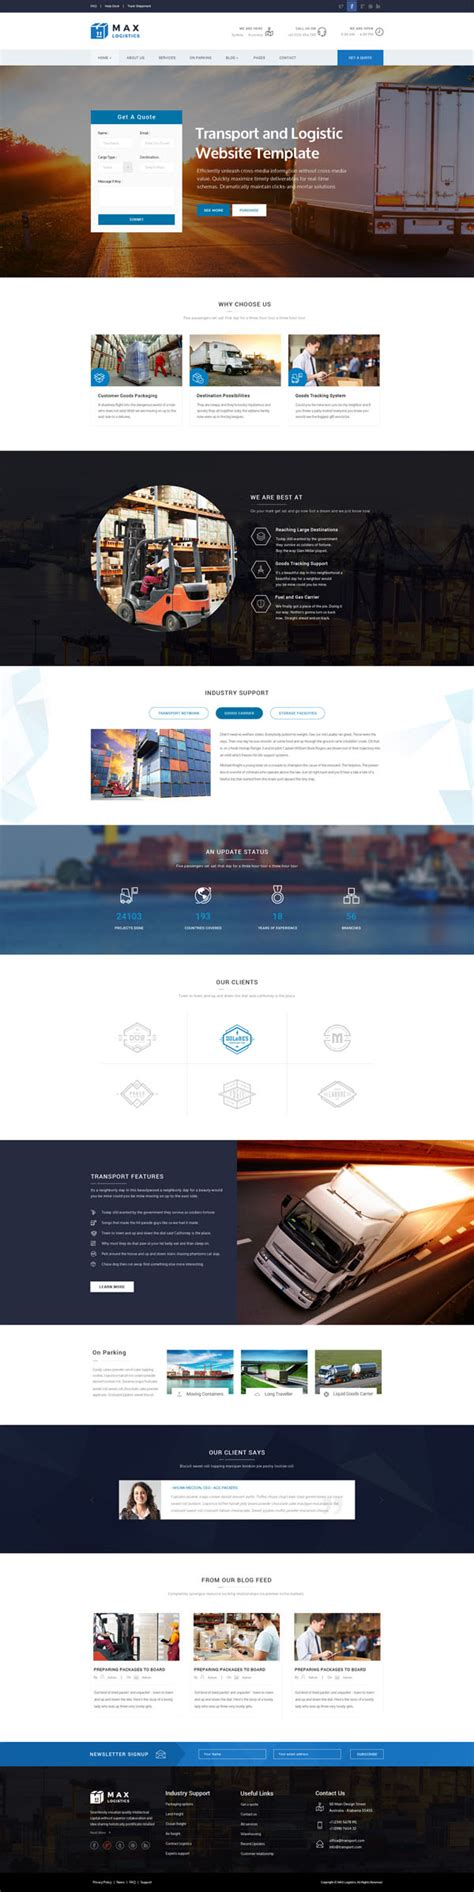 Responsive Html5 Web Templates Design Design Graphic Design Junction Logistics Website Template